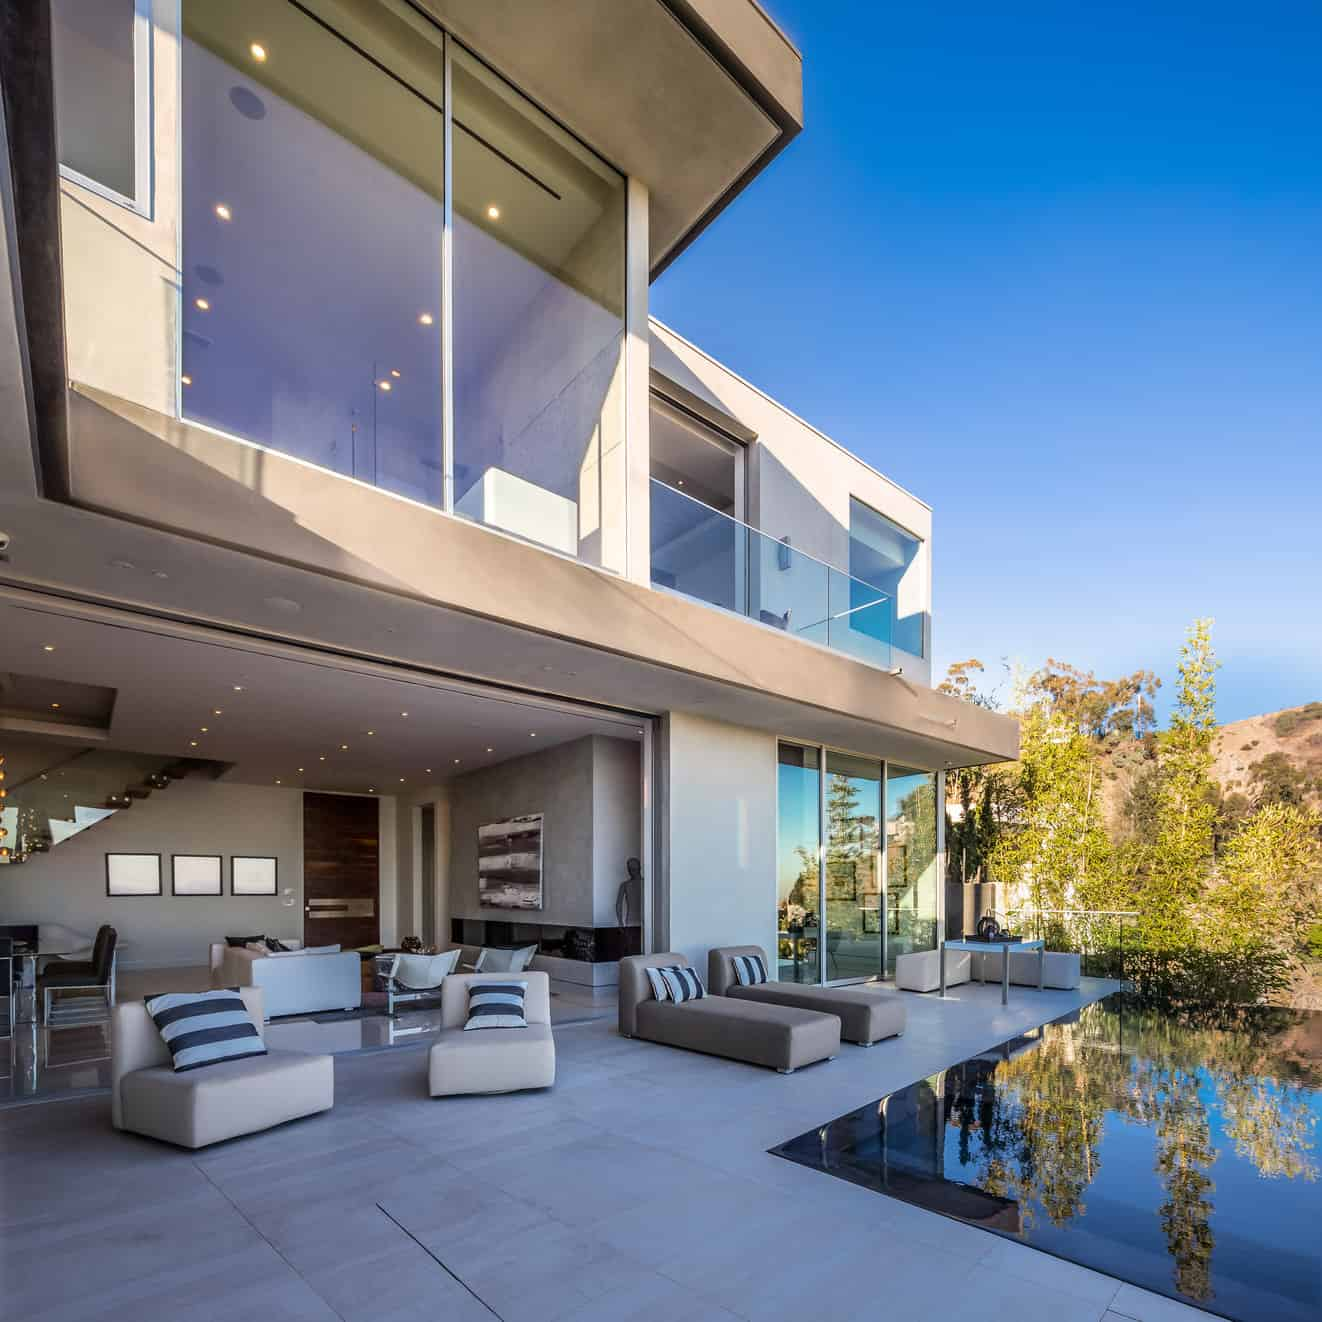 Architecture-Contemporary-Residence-Noesis Group-18-1 Kindesign